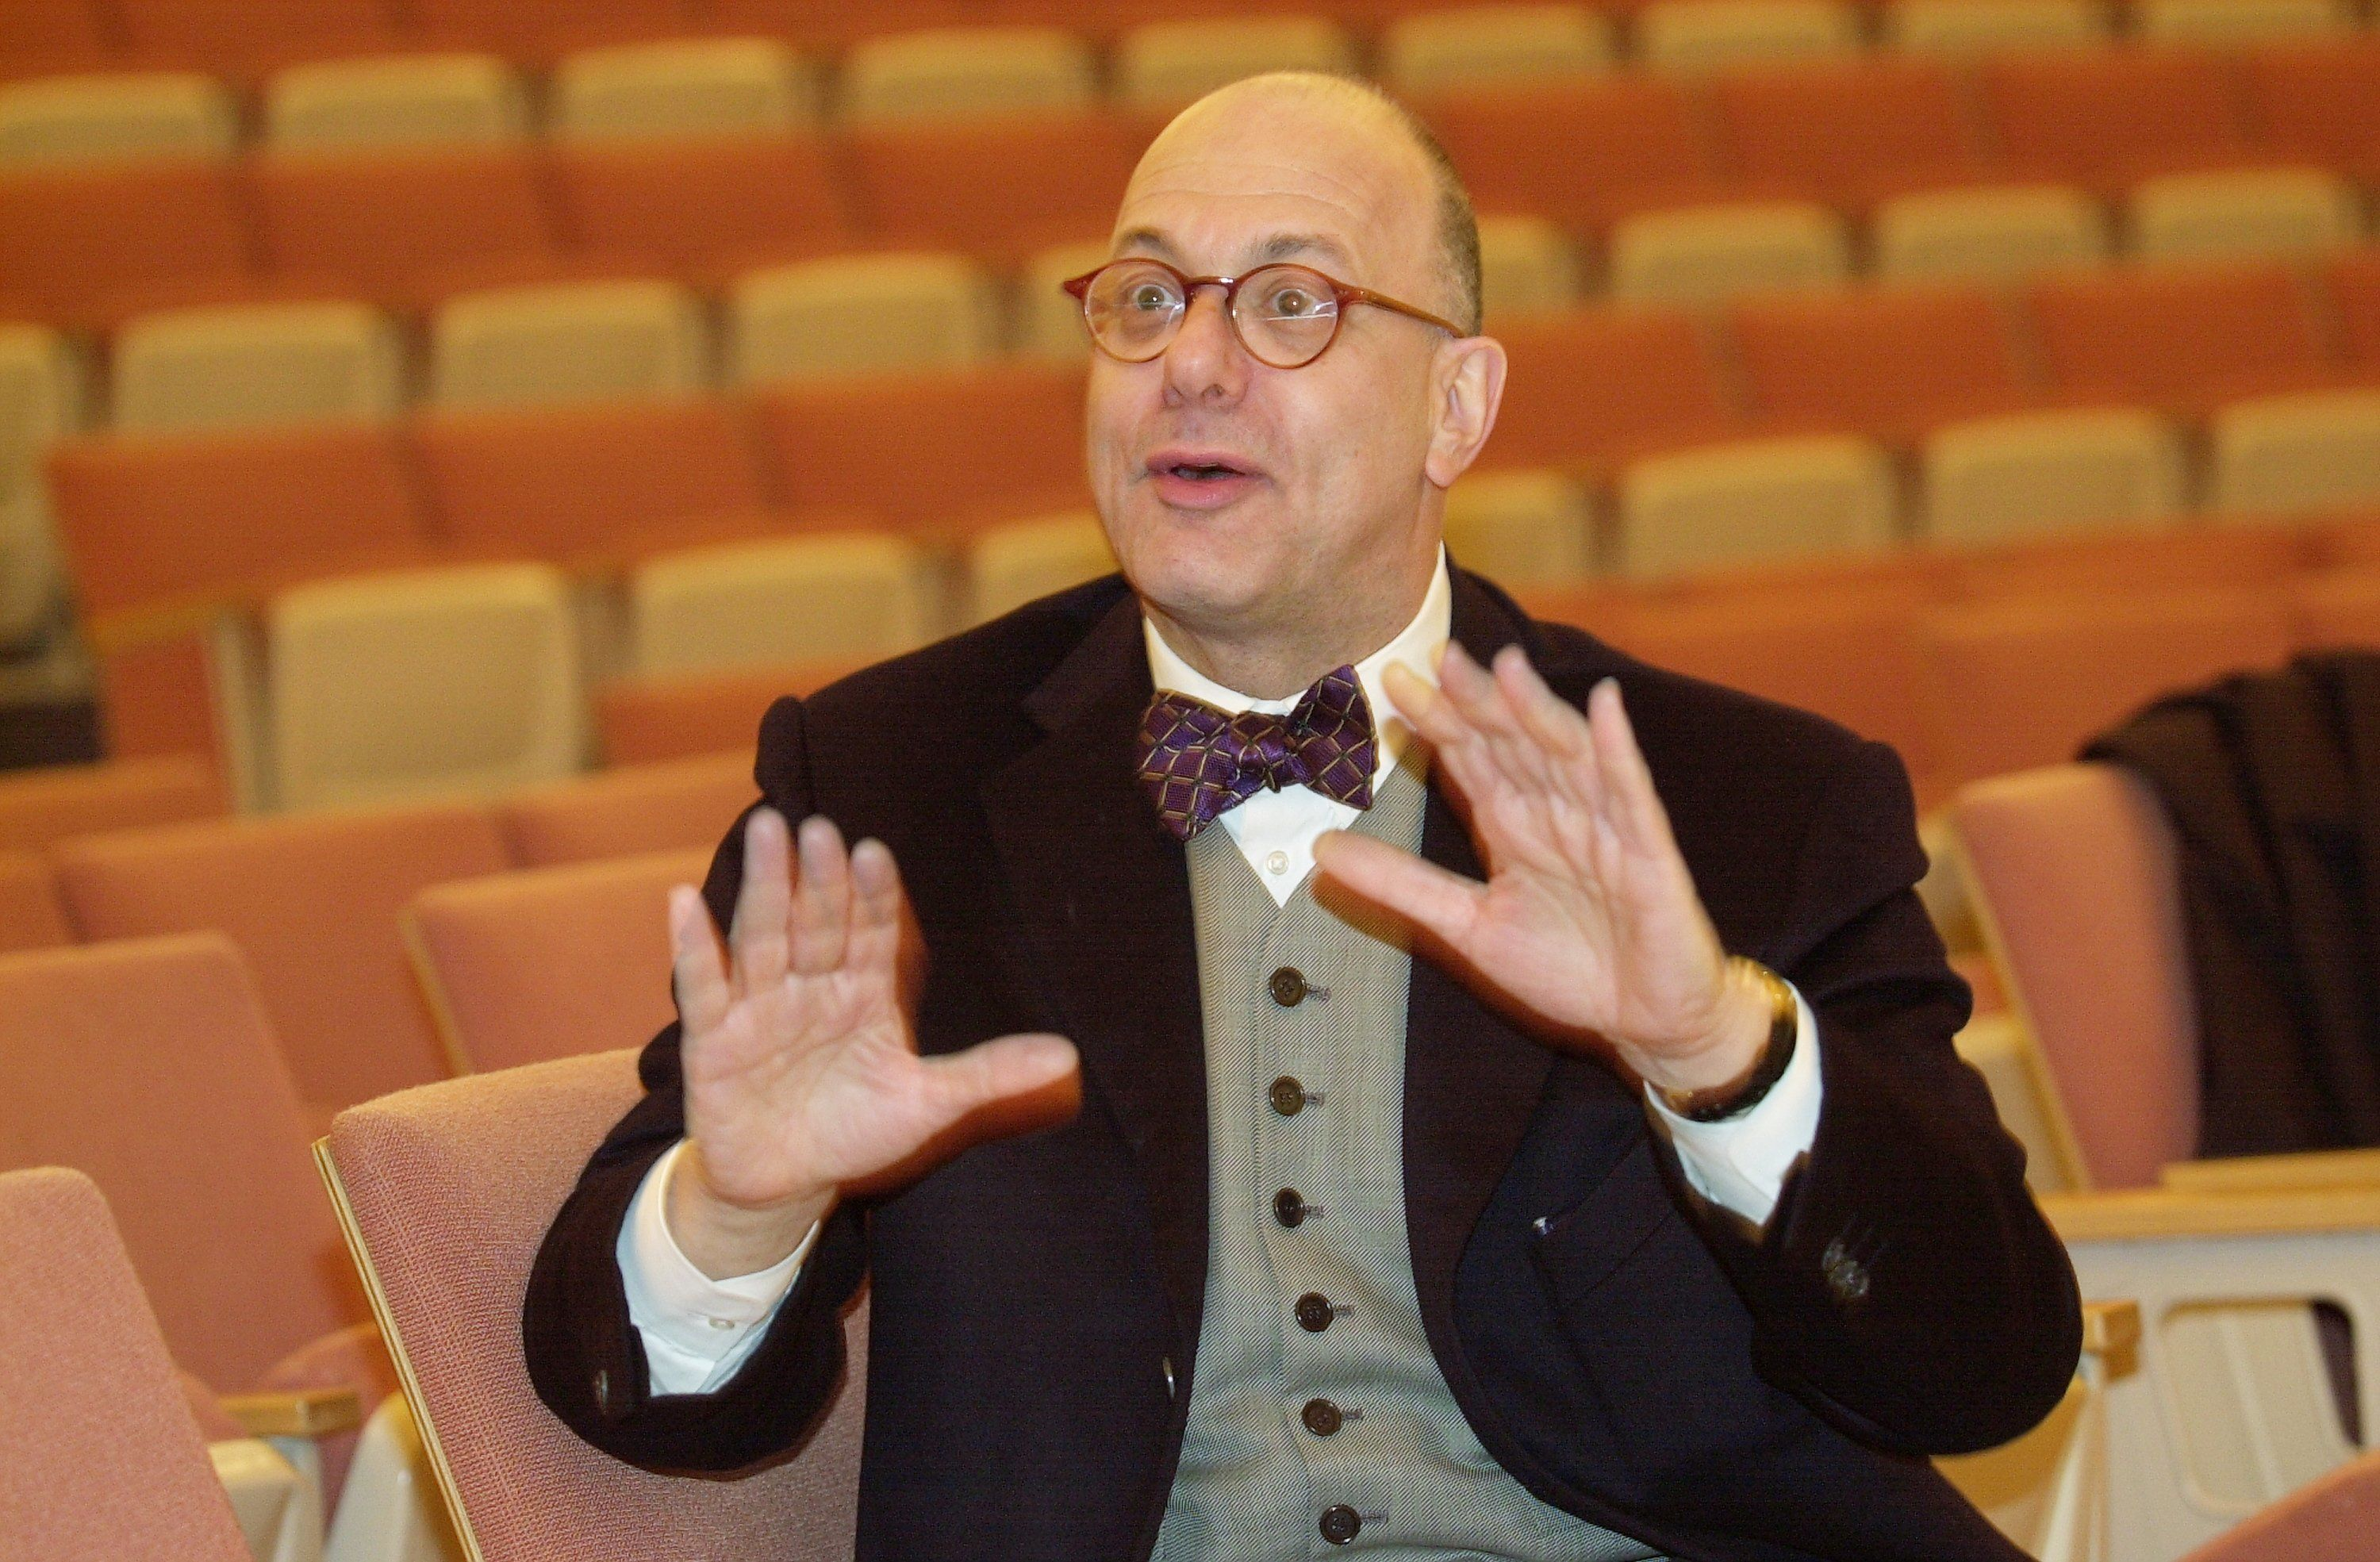 UNITED STATES - FEBRUARY 02:  Leon Botstein, president of Bard College and music director of the American Symphony Orchestra, at the Jewish Theological Seminary in Morningside Heights.  (Photo by David Handschuh/NY Daily News Archive via Getty Images)